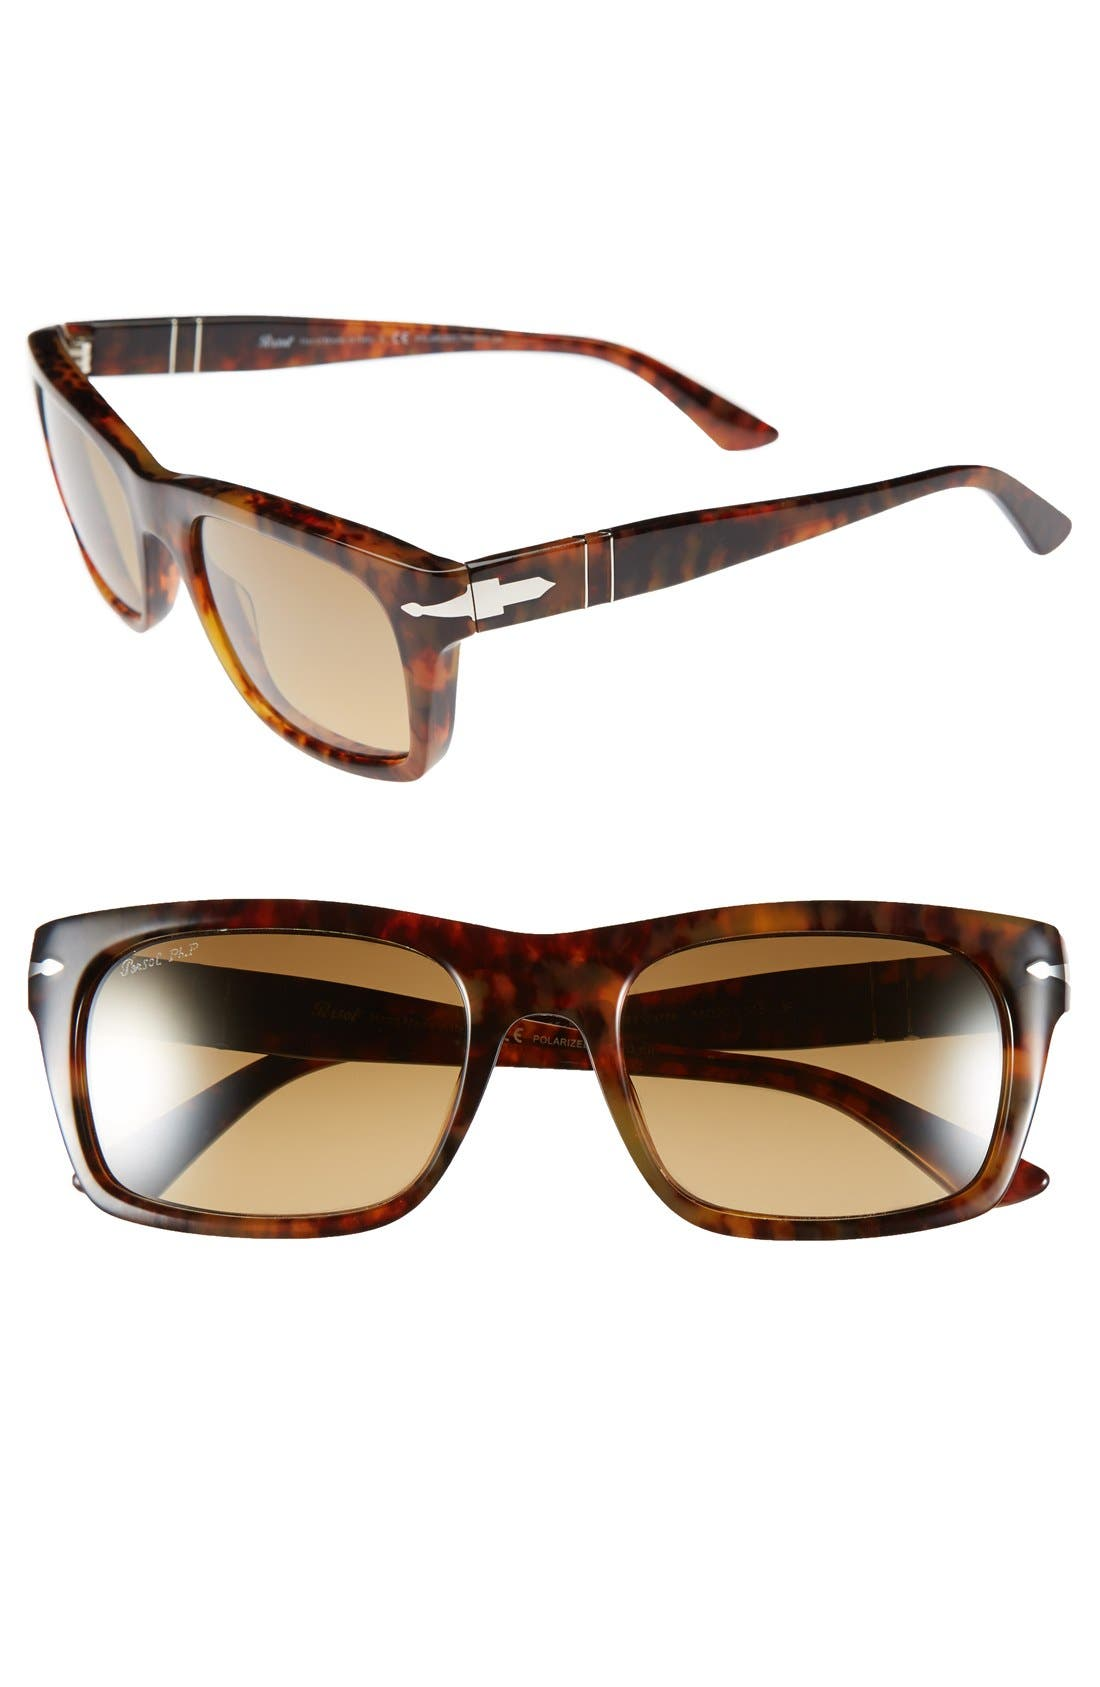 Alternate Image 1 Selected - Persol 55mm Photochromatic Sunglasses